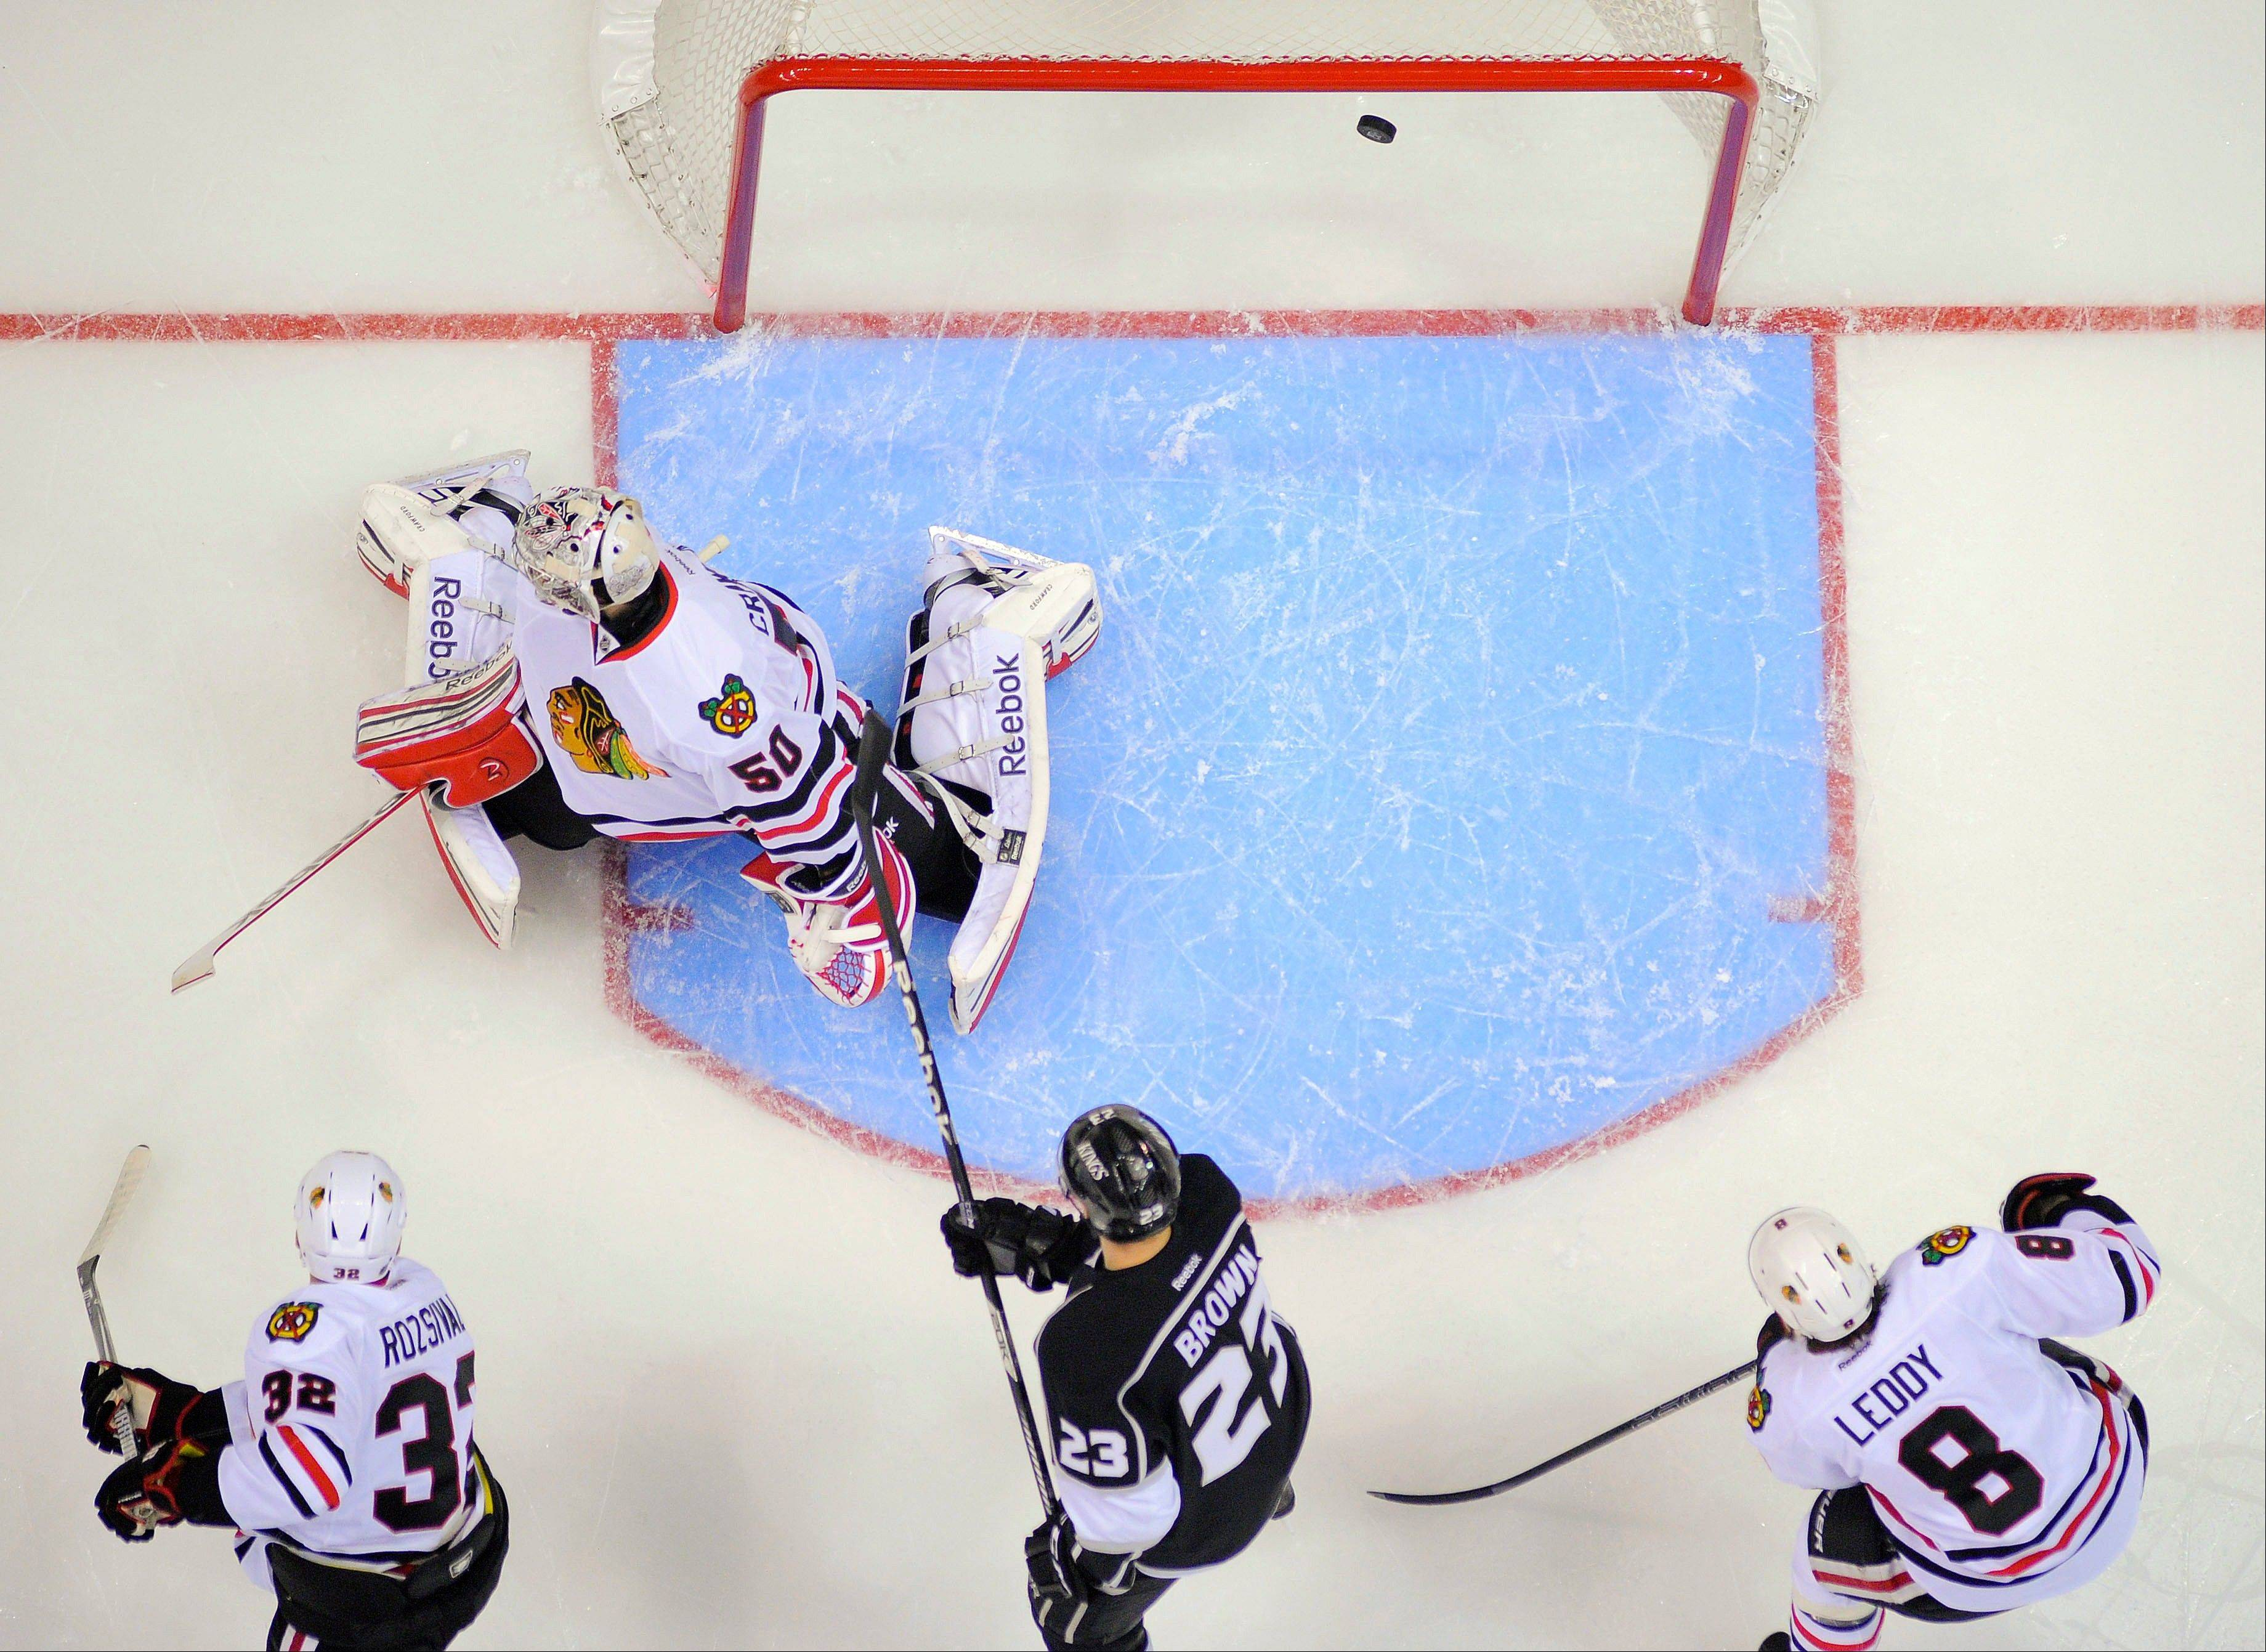 Kings grab momentum from Blackhawks with Game 3 win